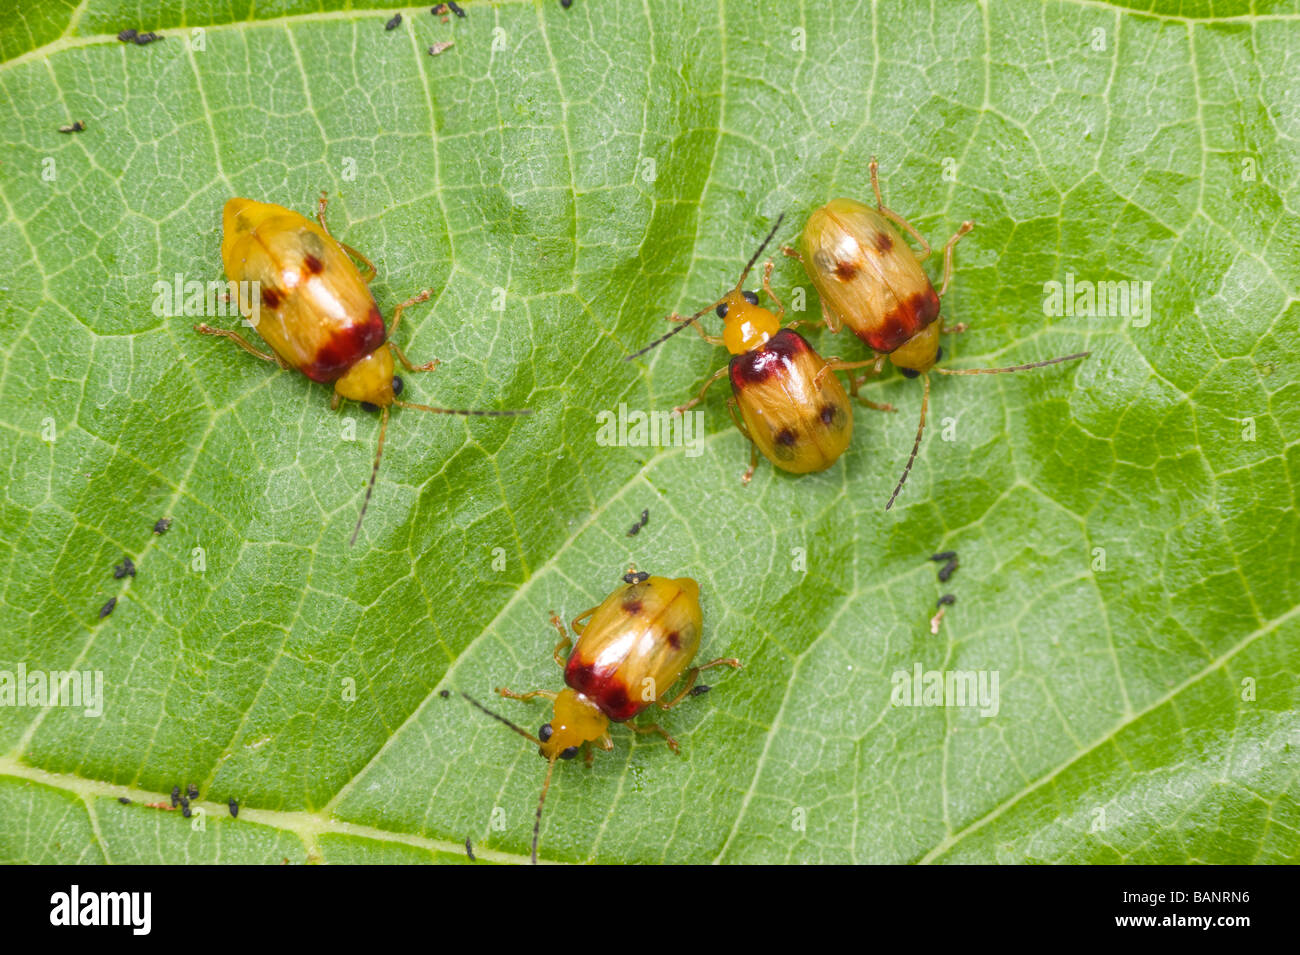 Redshouldered leaf beetle, or monolepta beetle, is an Australian insect pest - Stock Image